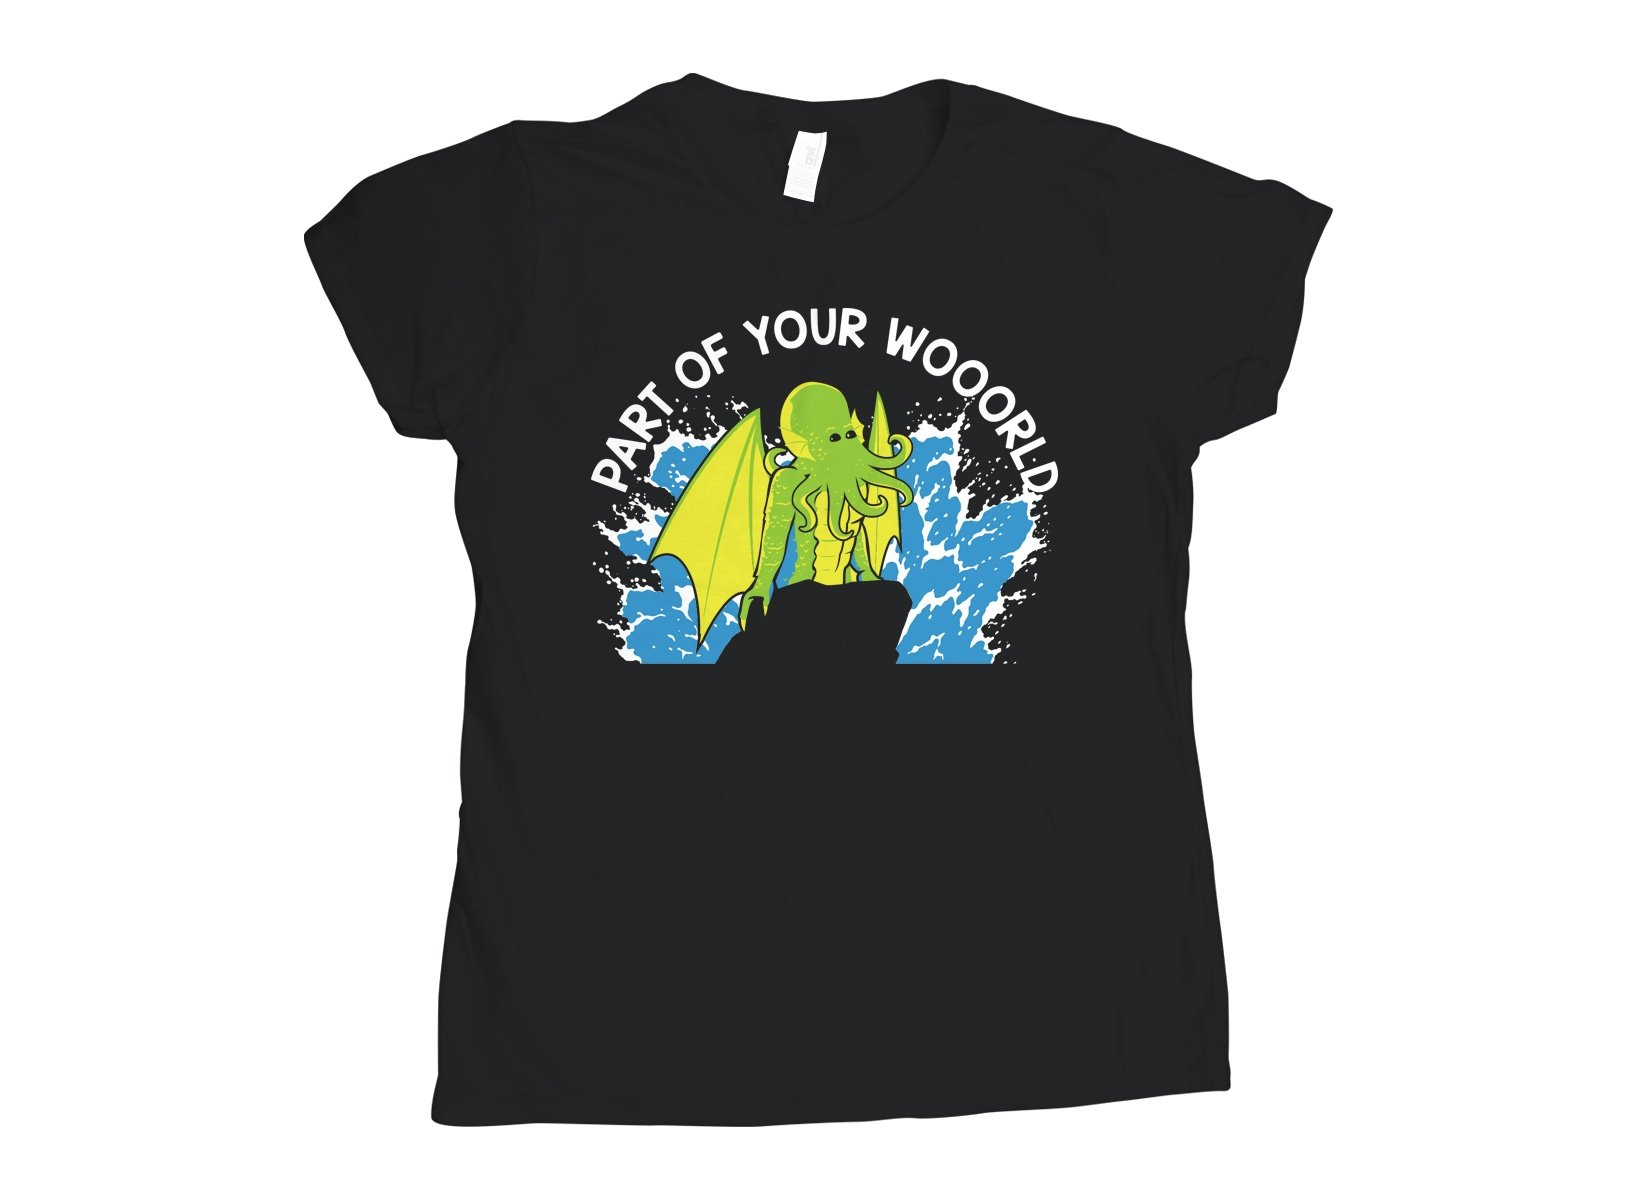 Part Of Your World on Womens T-Shirt